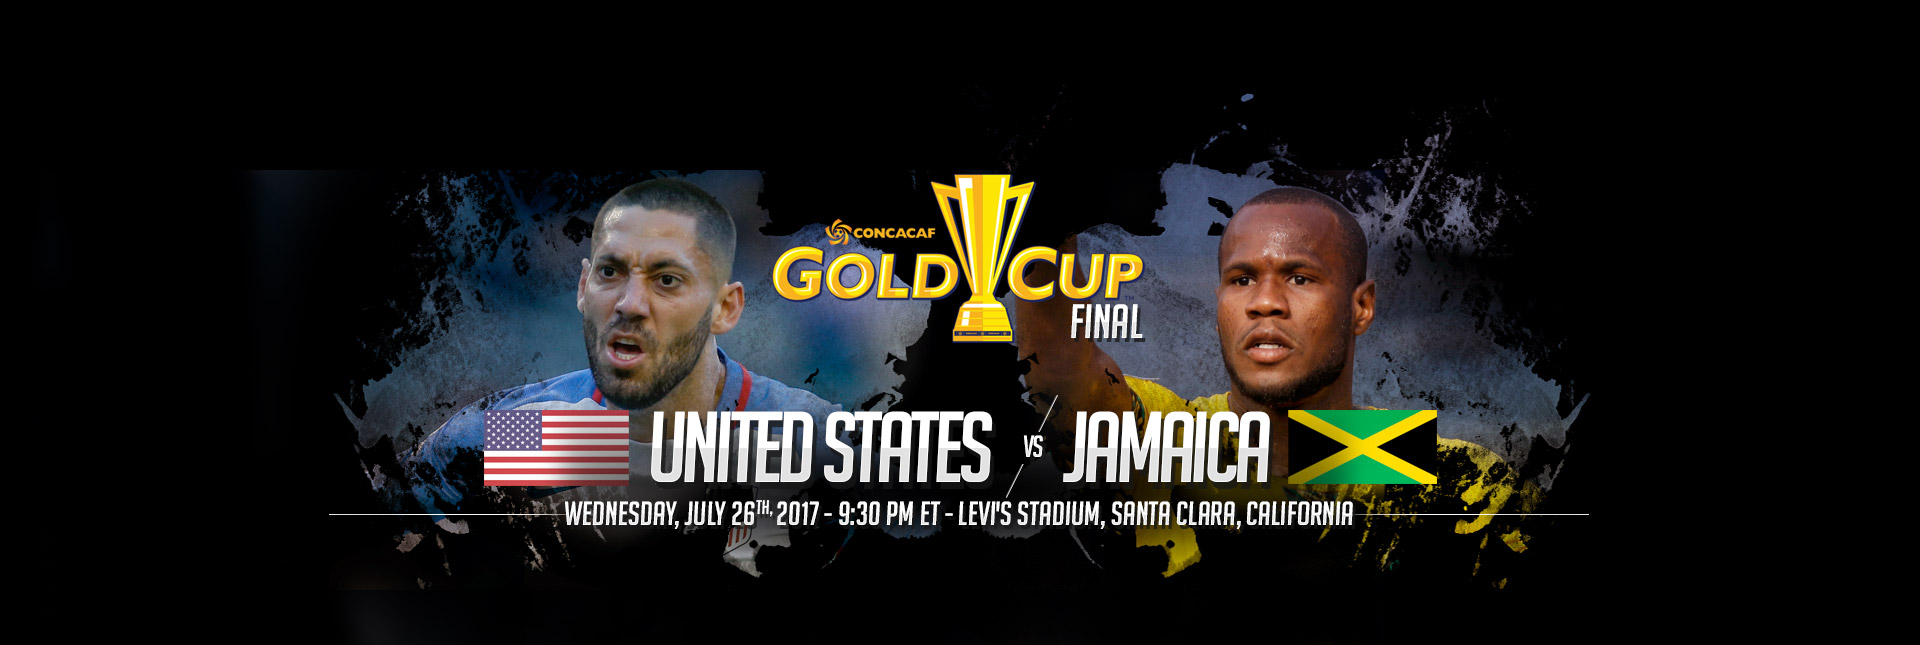 United States vs. Jamaica Gold Cup Final